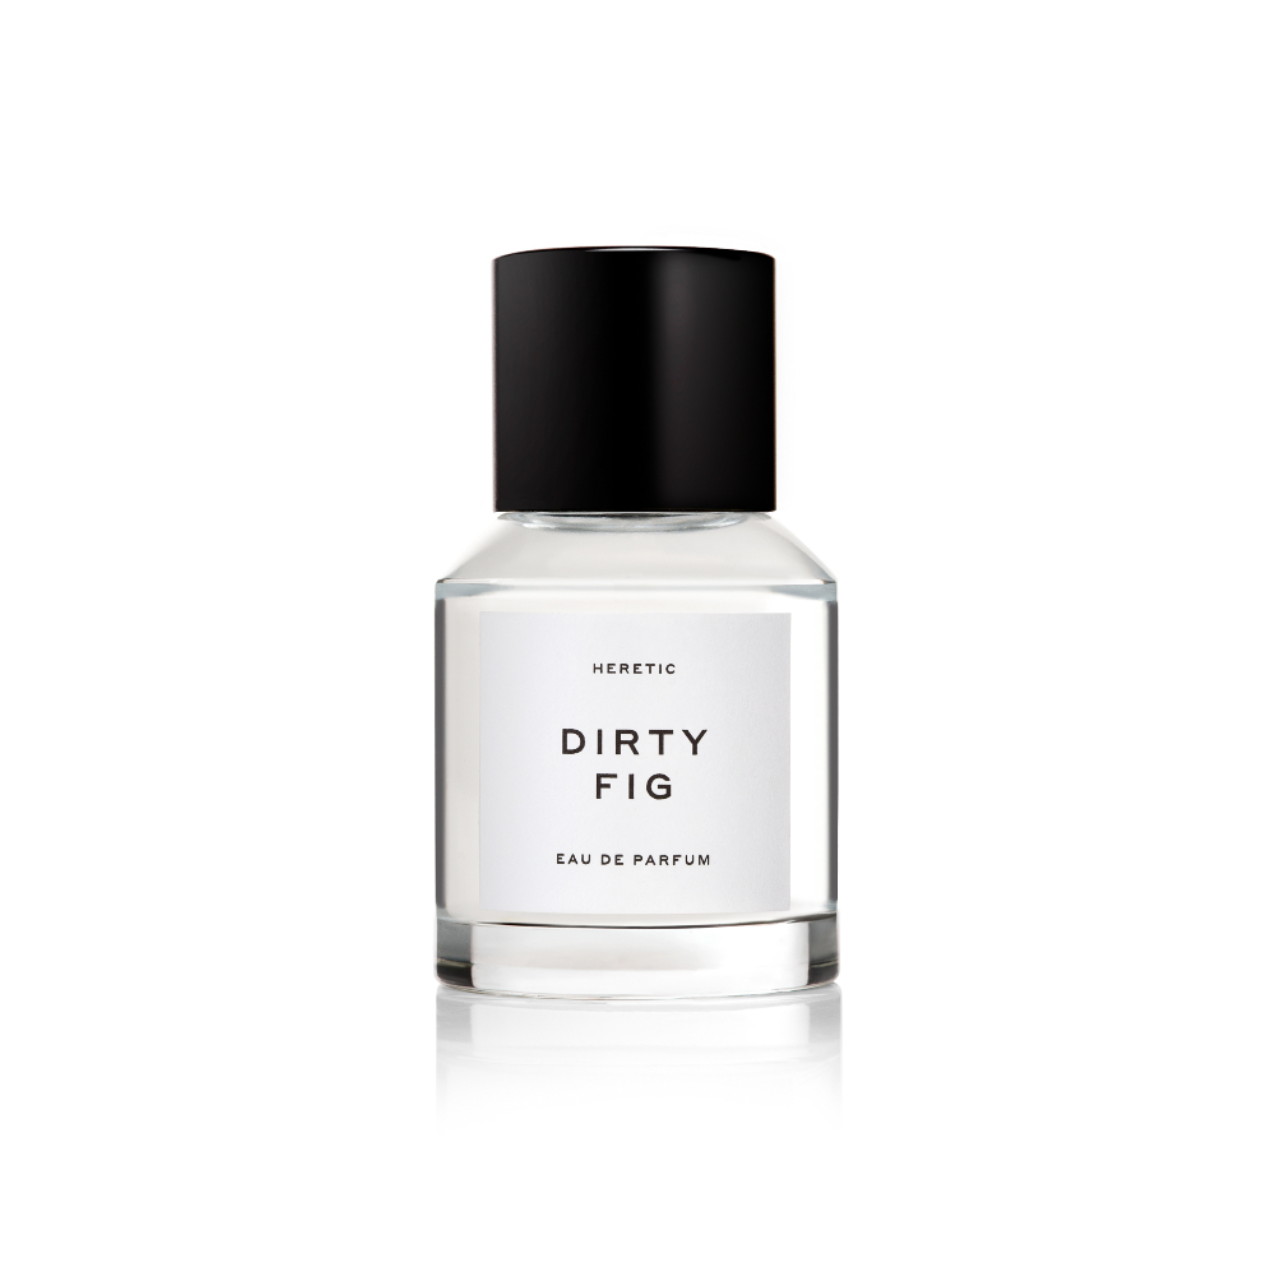 DIRTY FIG - 50ML